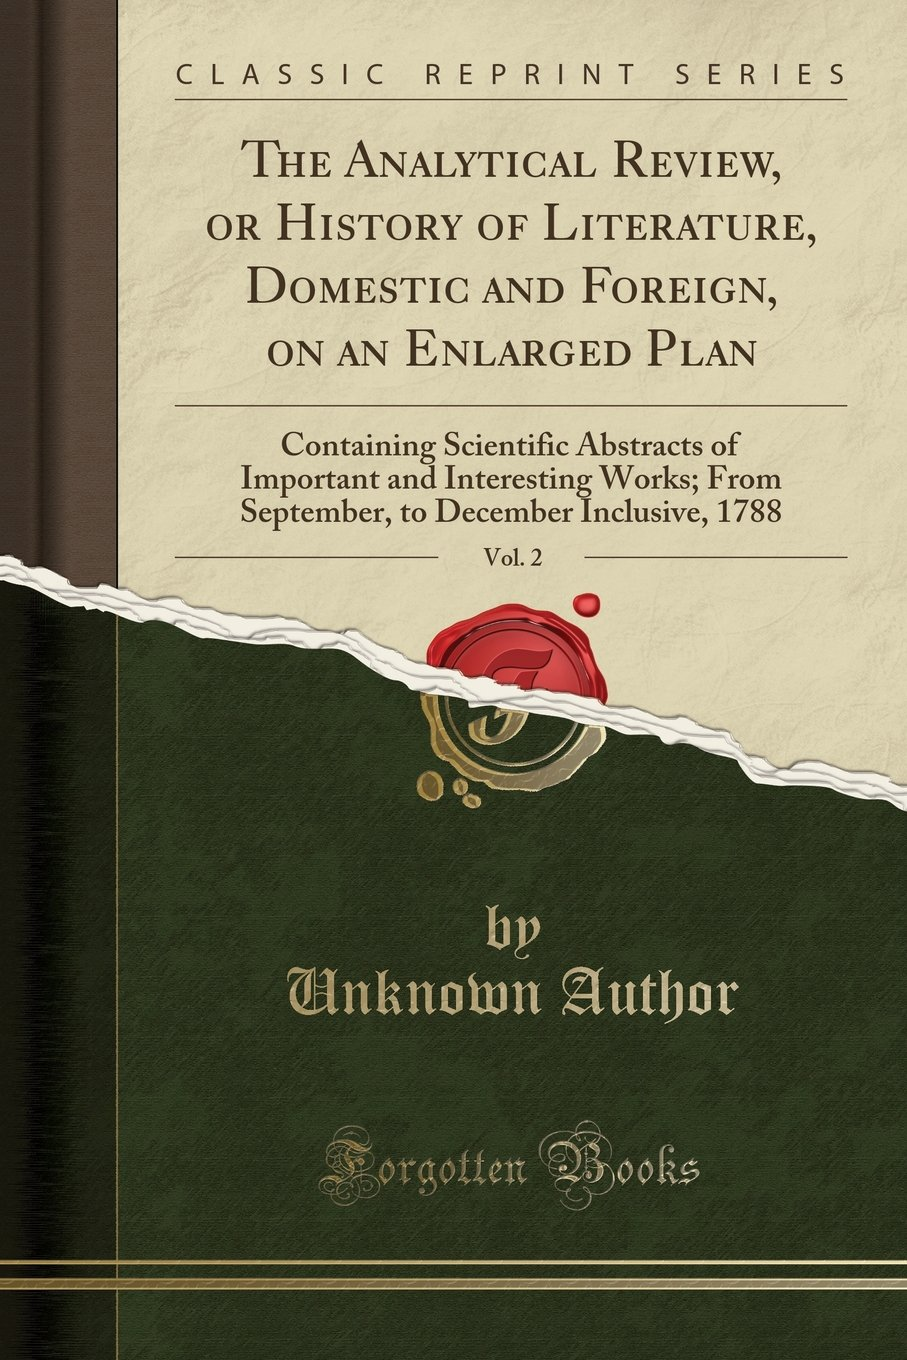 The Analytical Review, or History of Literature, Domestic and Foreign, on an Enlarged Plan, Vol. 2: Containing Scientific Abstracts of Important and ... to December Inclusive, 1788 (Classic Reprint) PDF